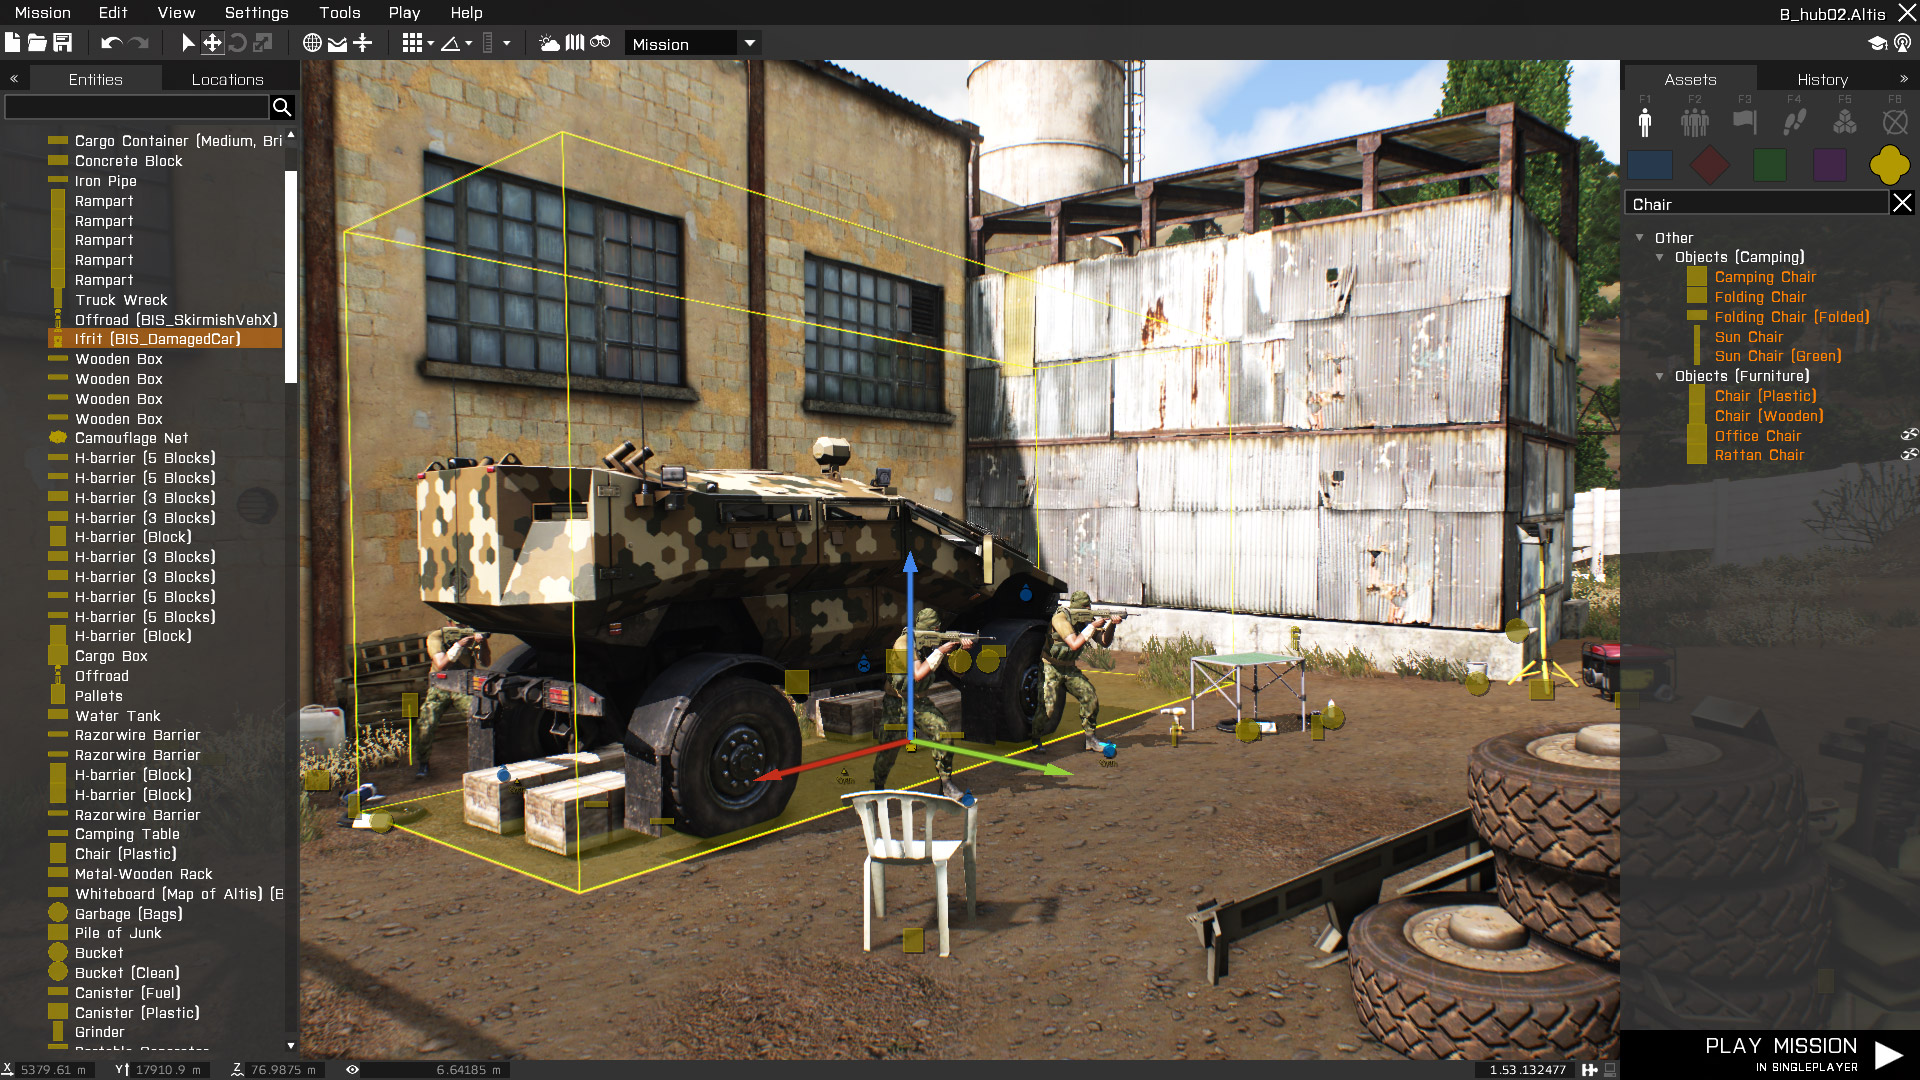 Bohemia interactive presents 2015 2016 roadmap for arma 3 for 3d editor online